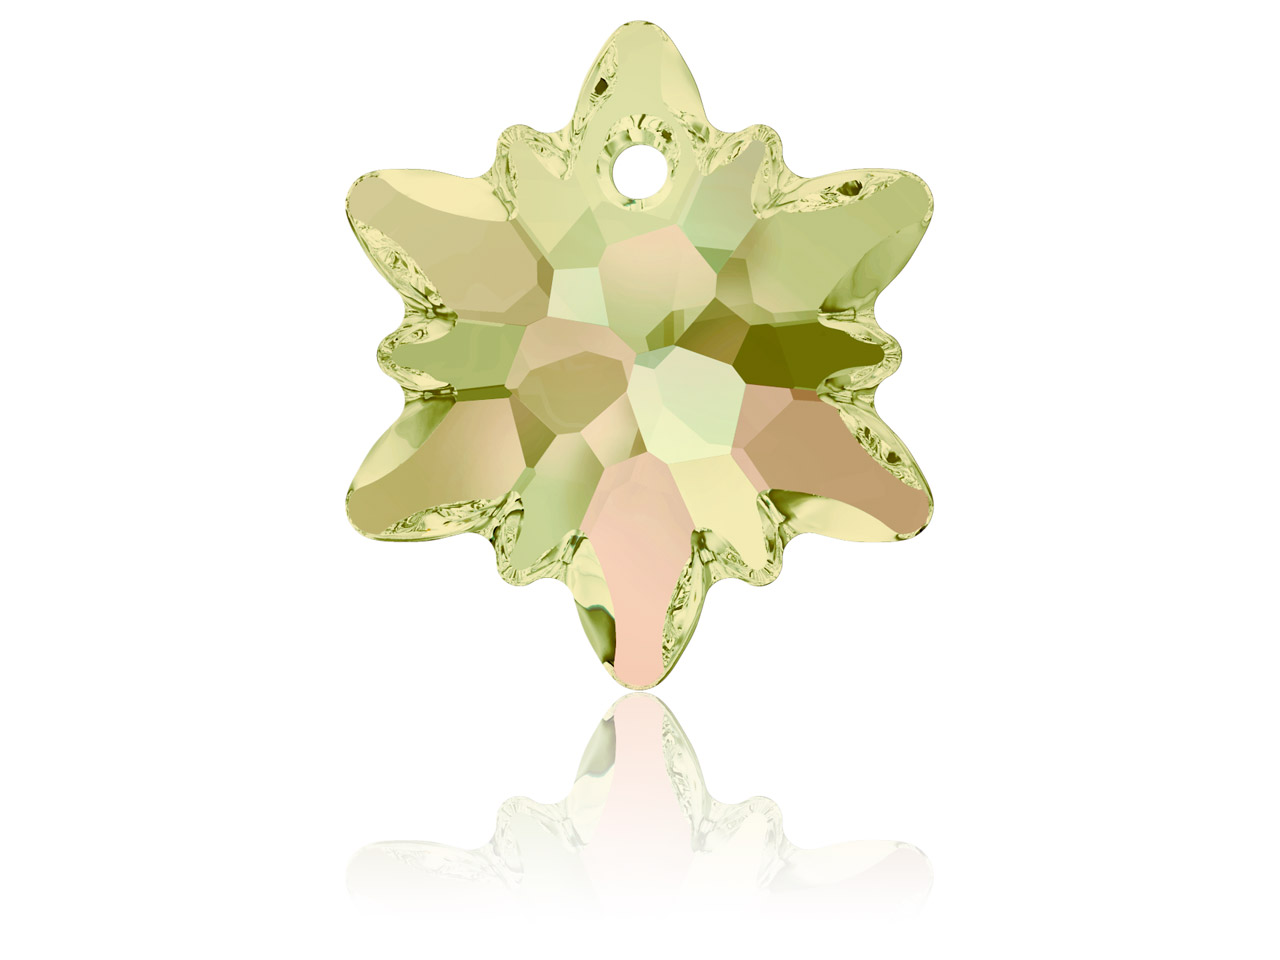 Swarovski Edelweiss Pendant, 14mm, Crystal Luminous Green